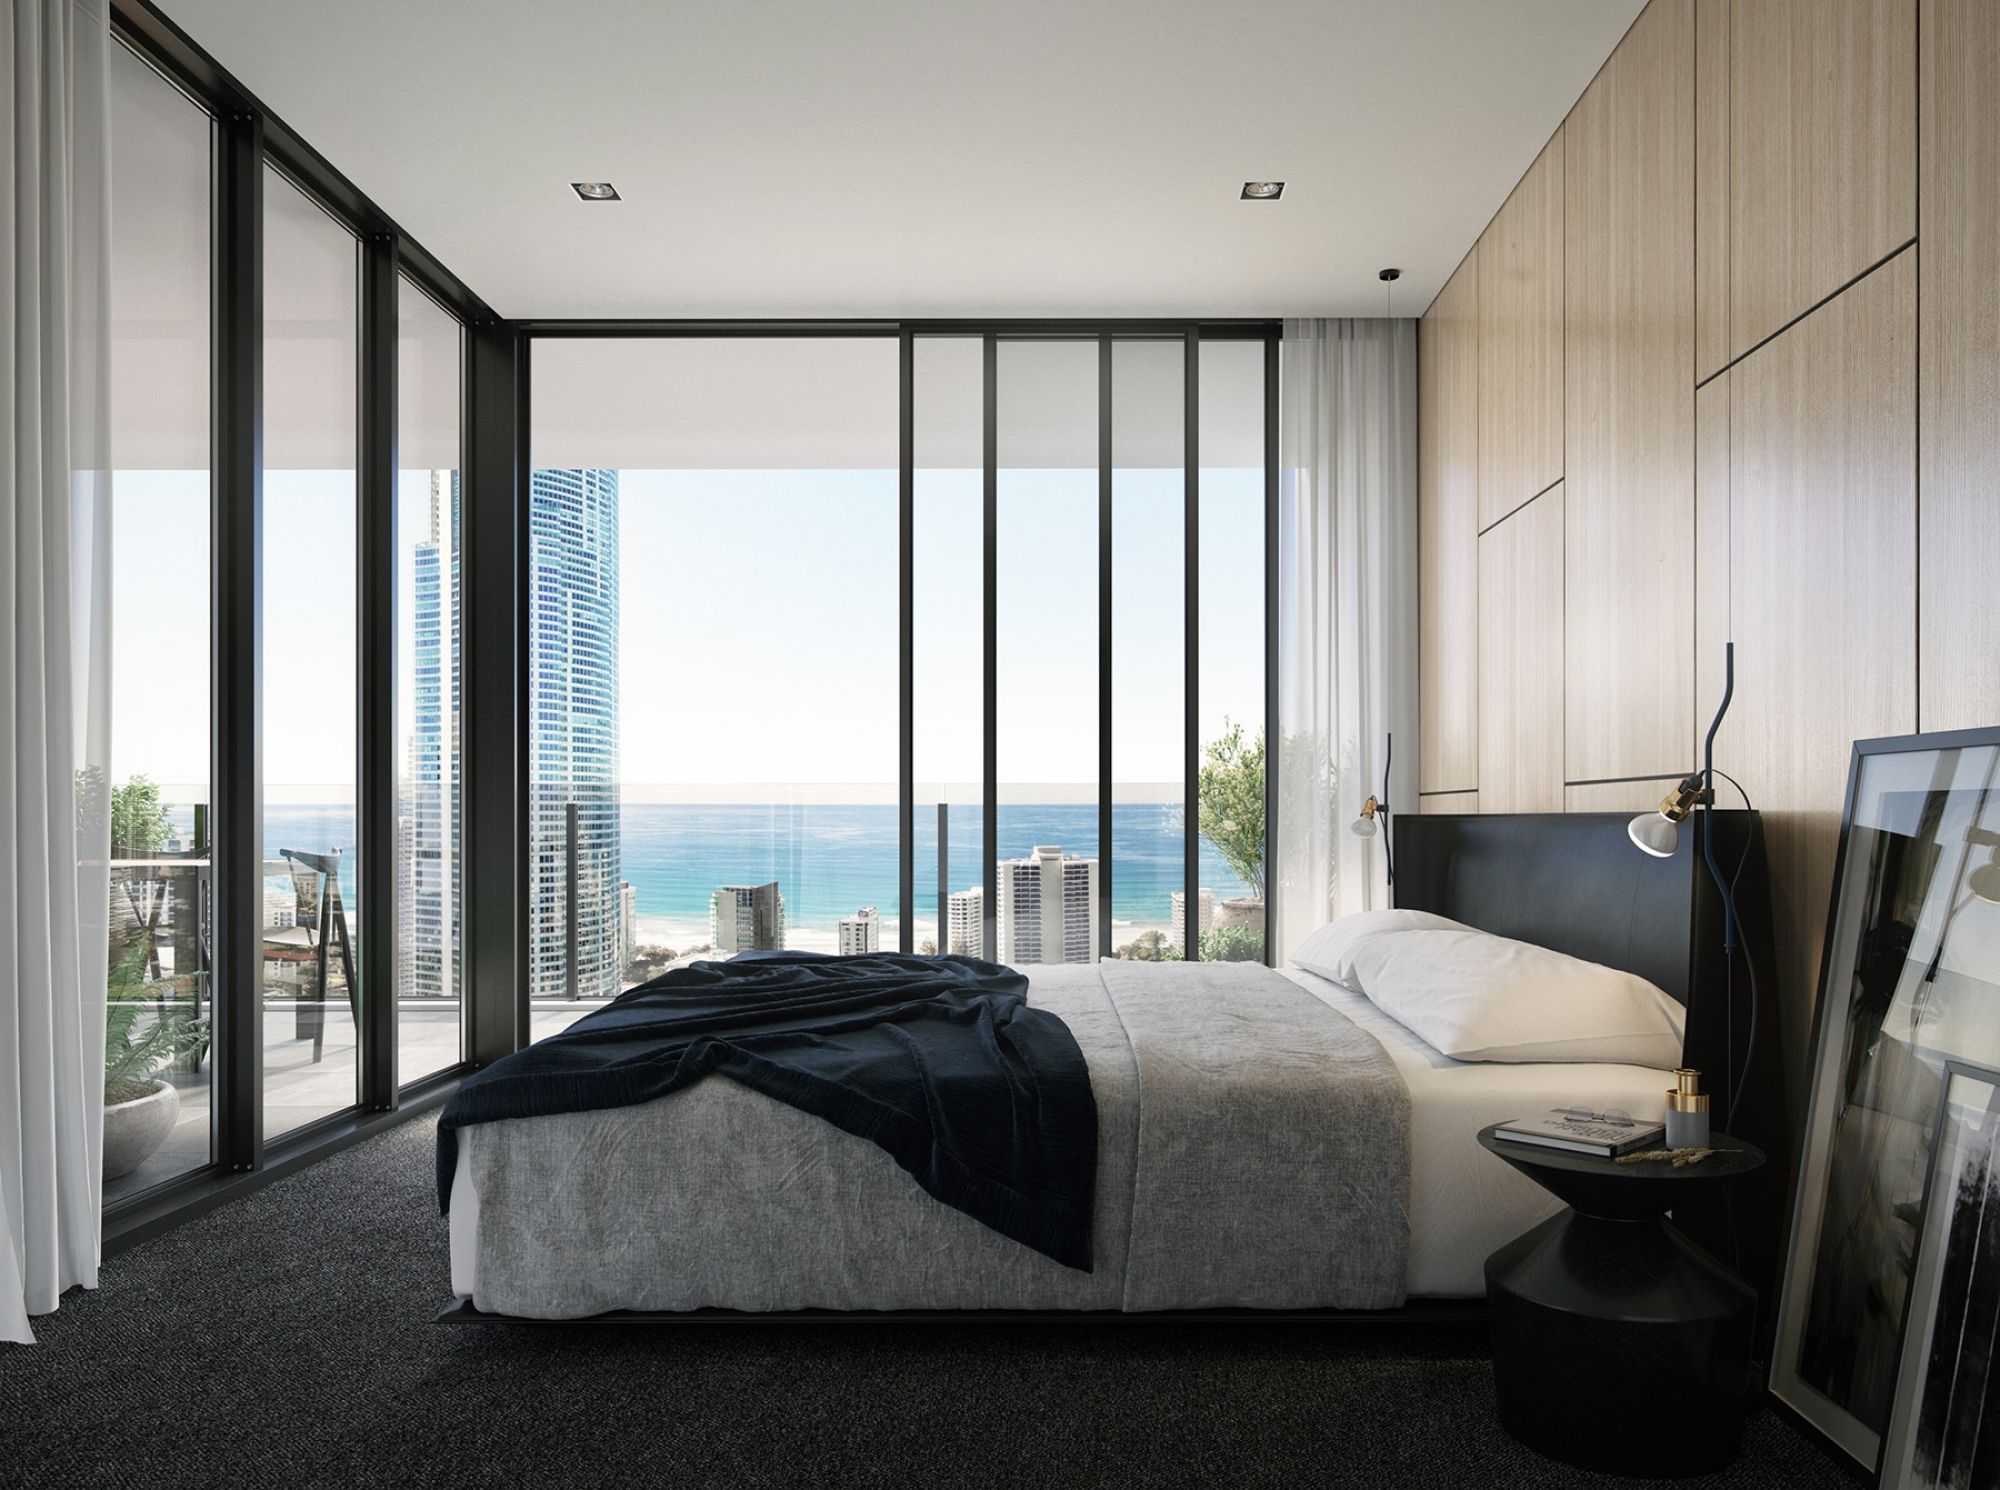 cgarchitect professional 3d architectural visualization user community bedroom design concept - Bedroom Design Concepts